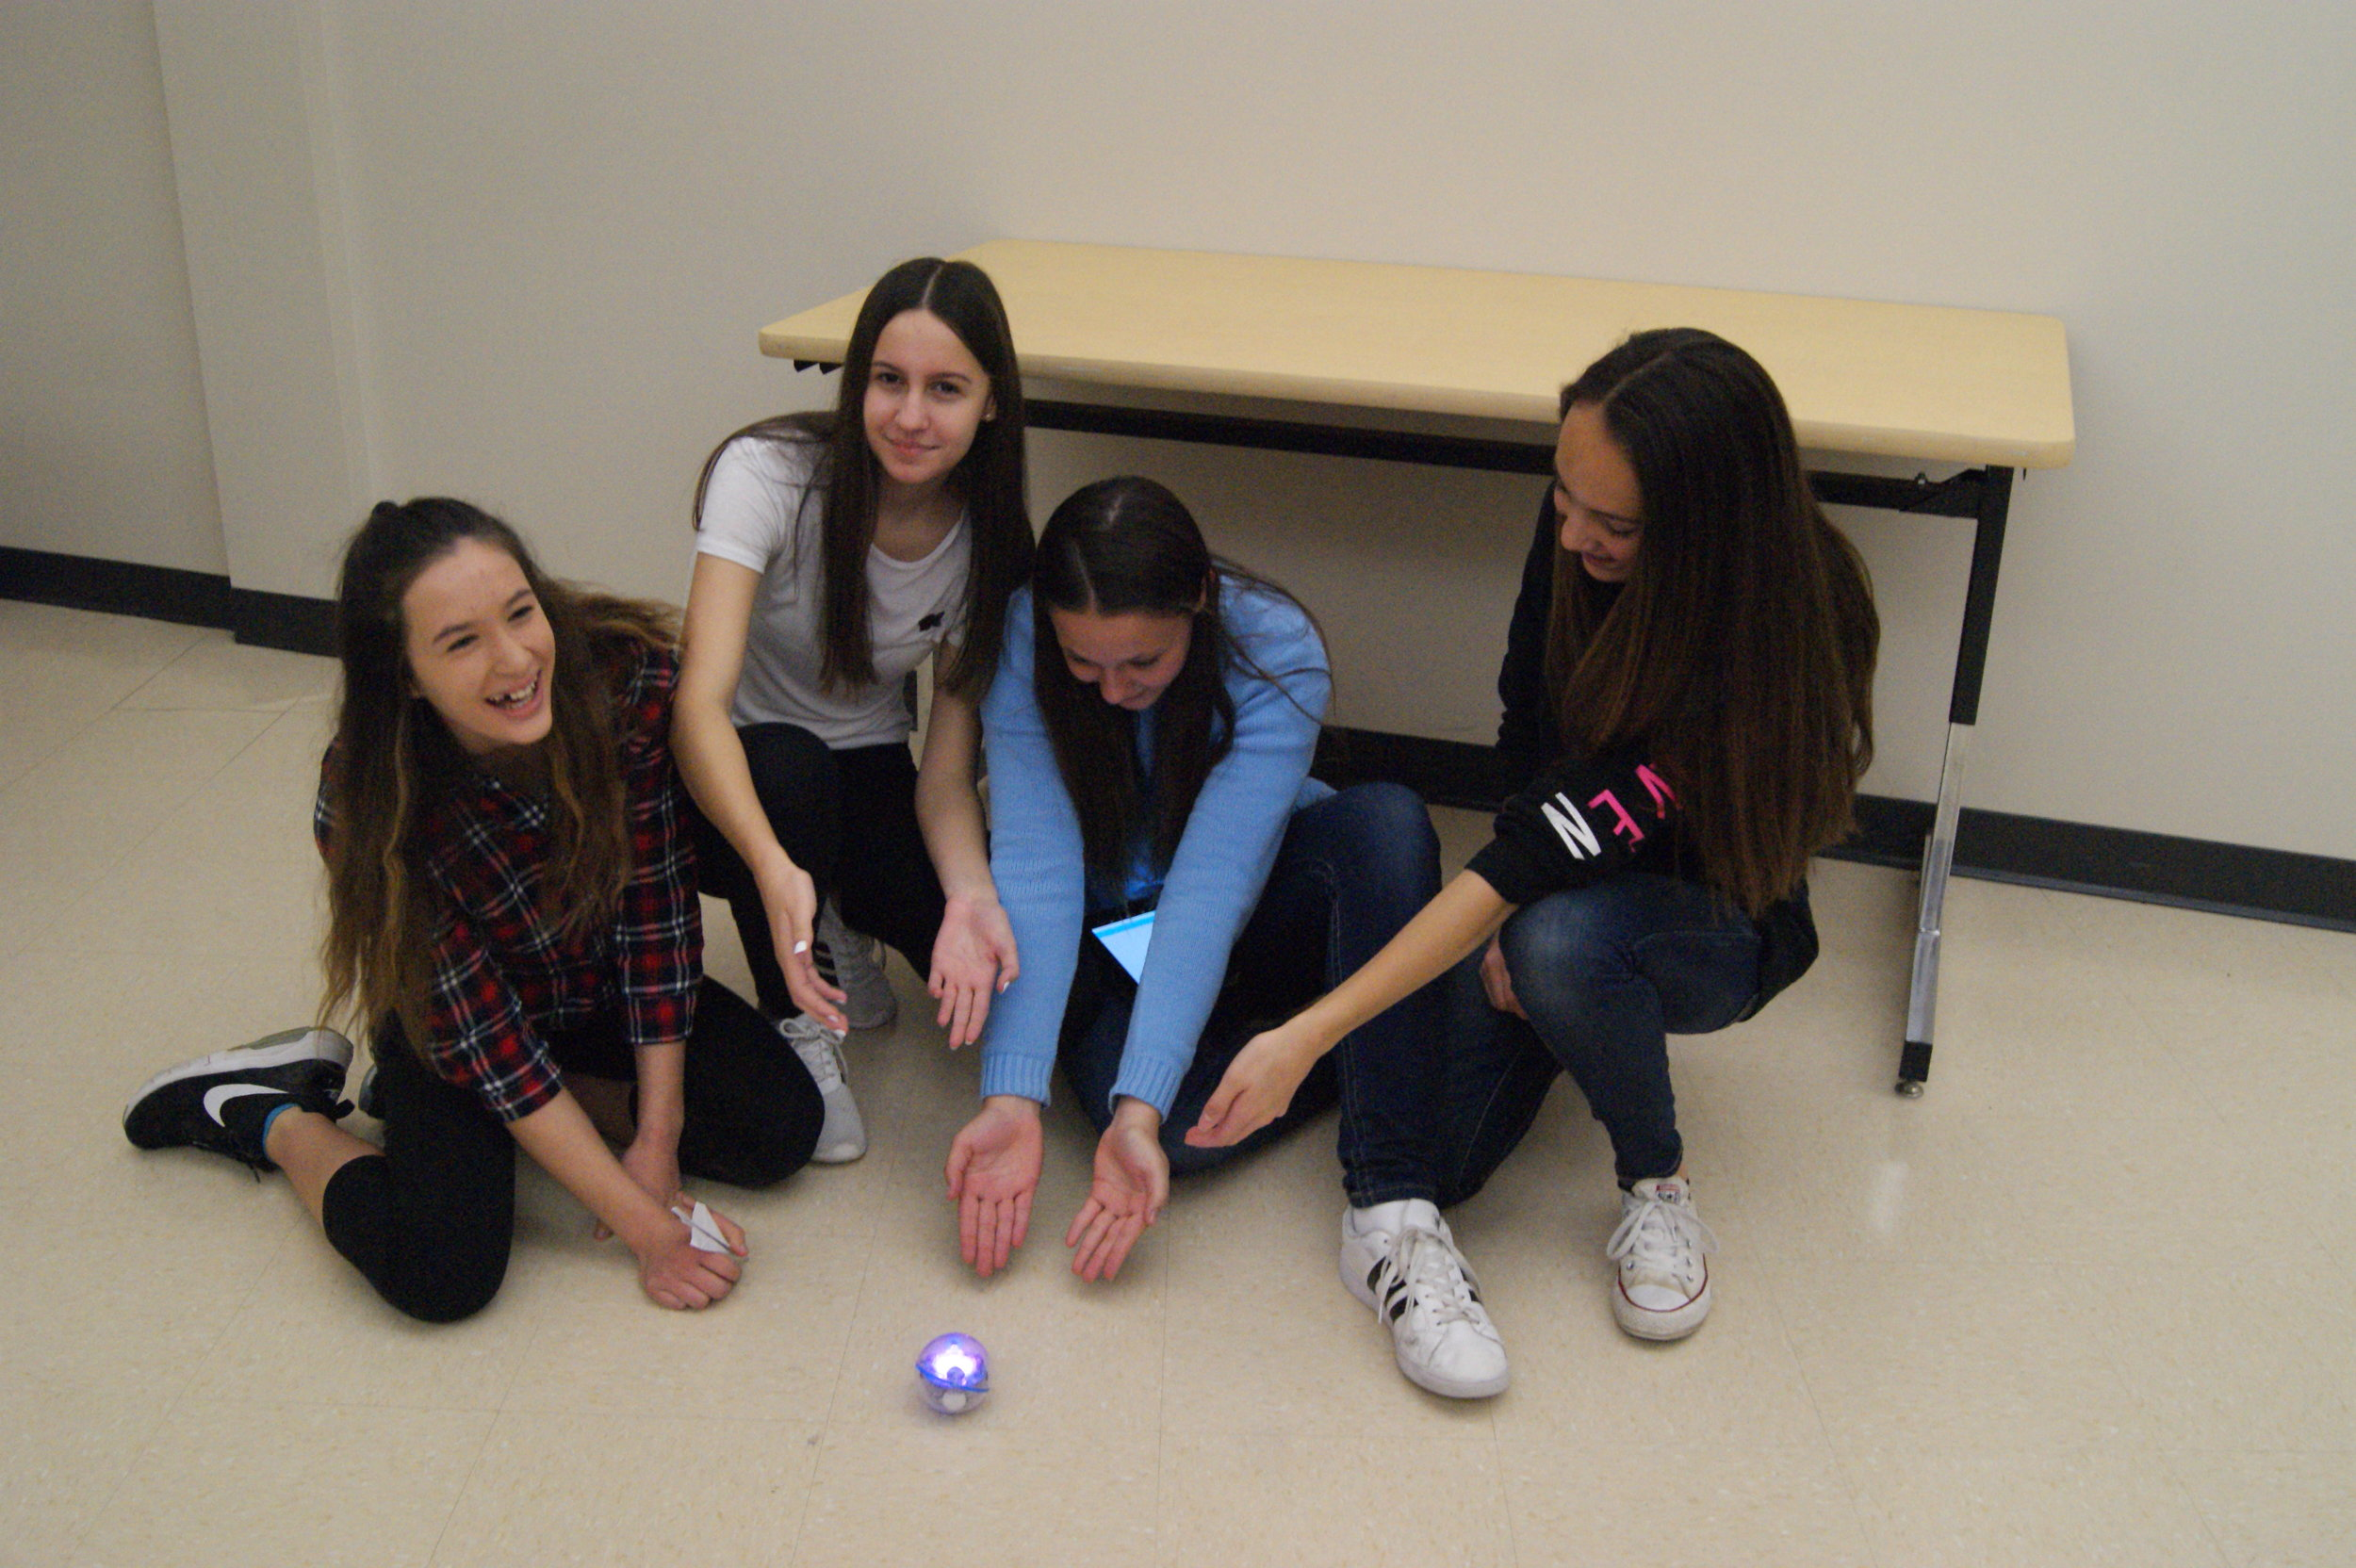 One of the groups that sucsessfuly programed a Sphero at Hour Of Code